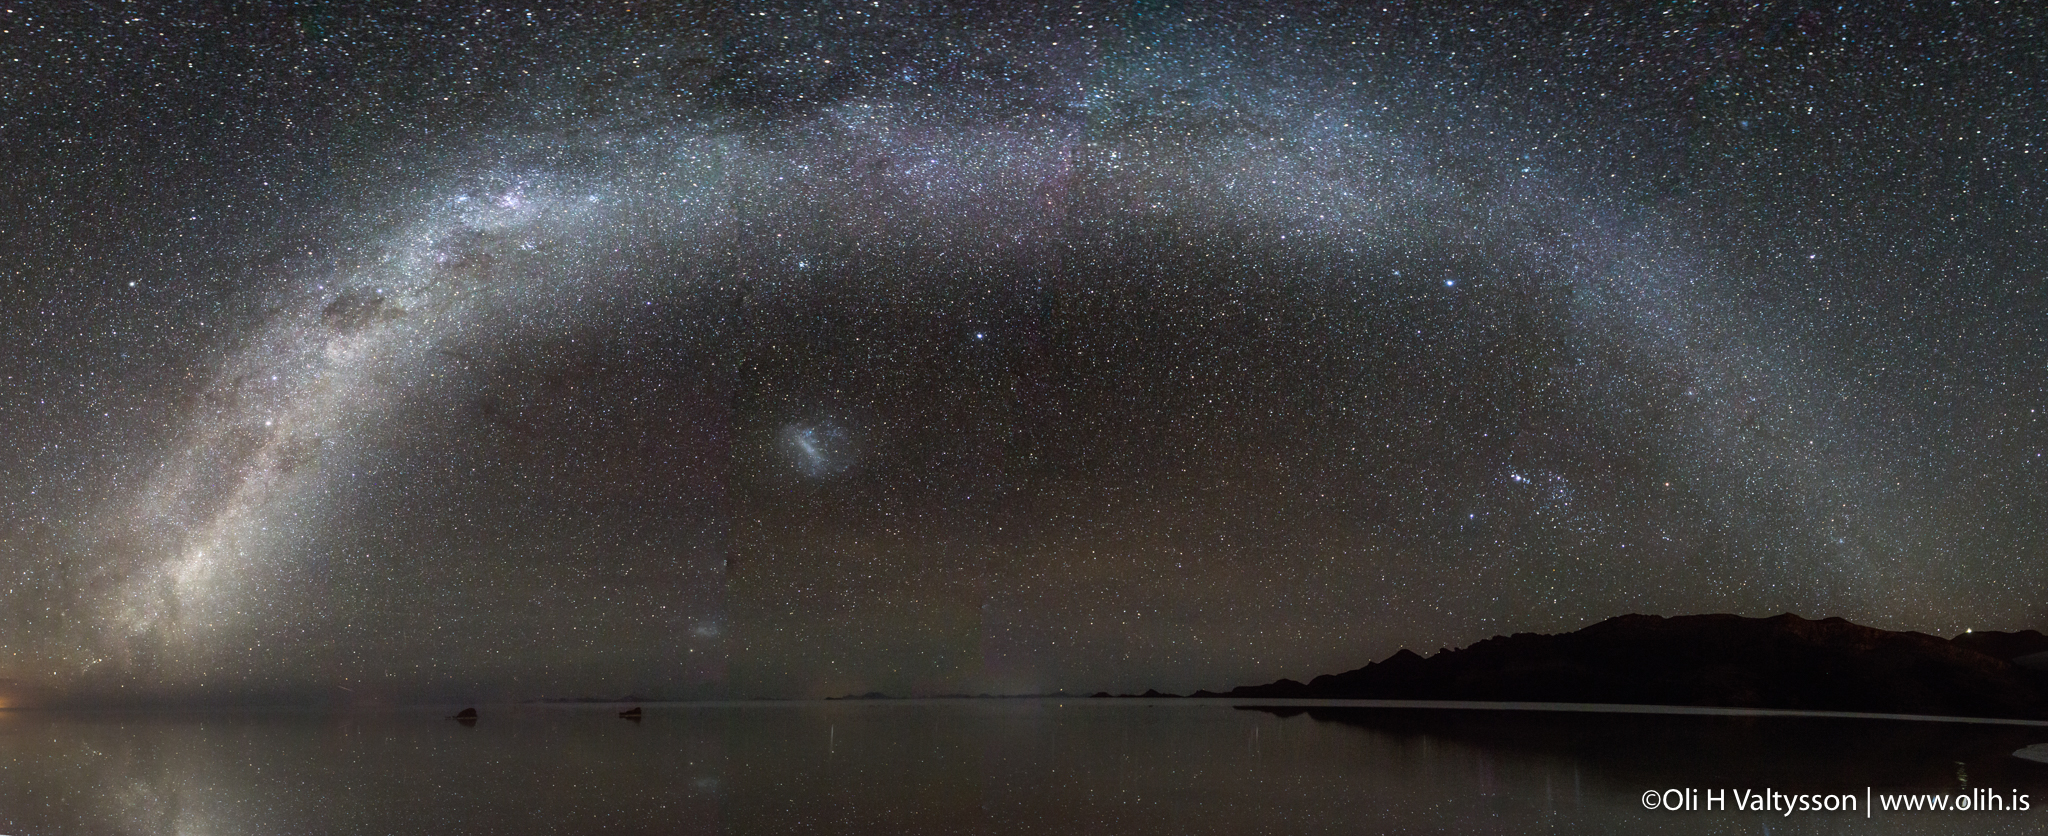 Capture the Milky Way Mirrored on Flooded Salt Flats